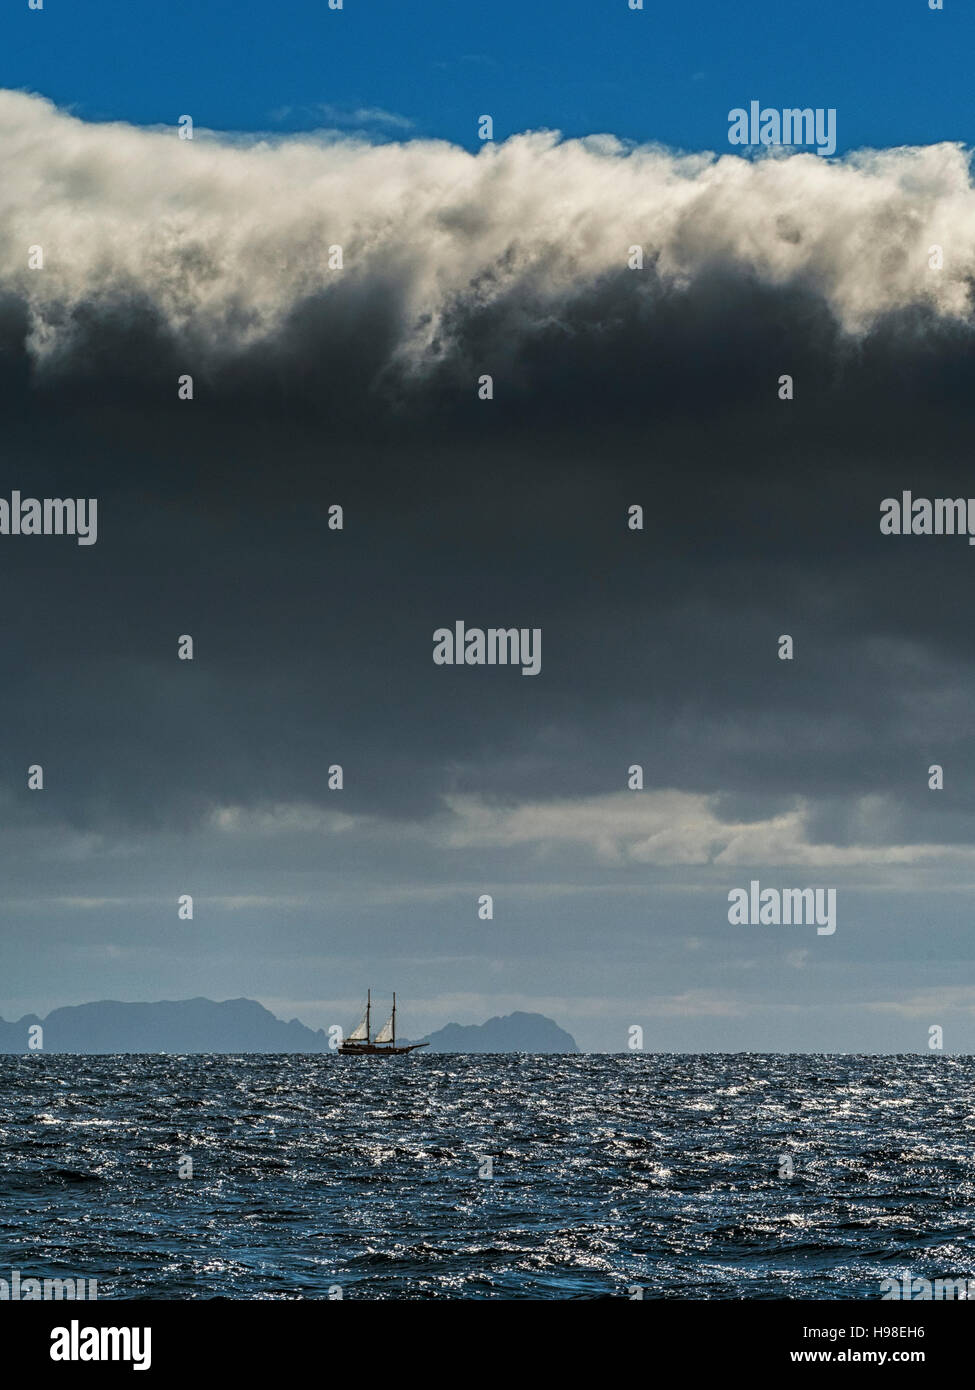 Deserted Islands: a two-masted boat sails past Ilhas Desertas, a small archipelago off the coast of Madeira, Portugal - Stock Image